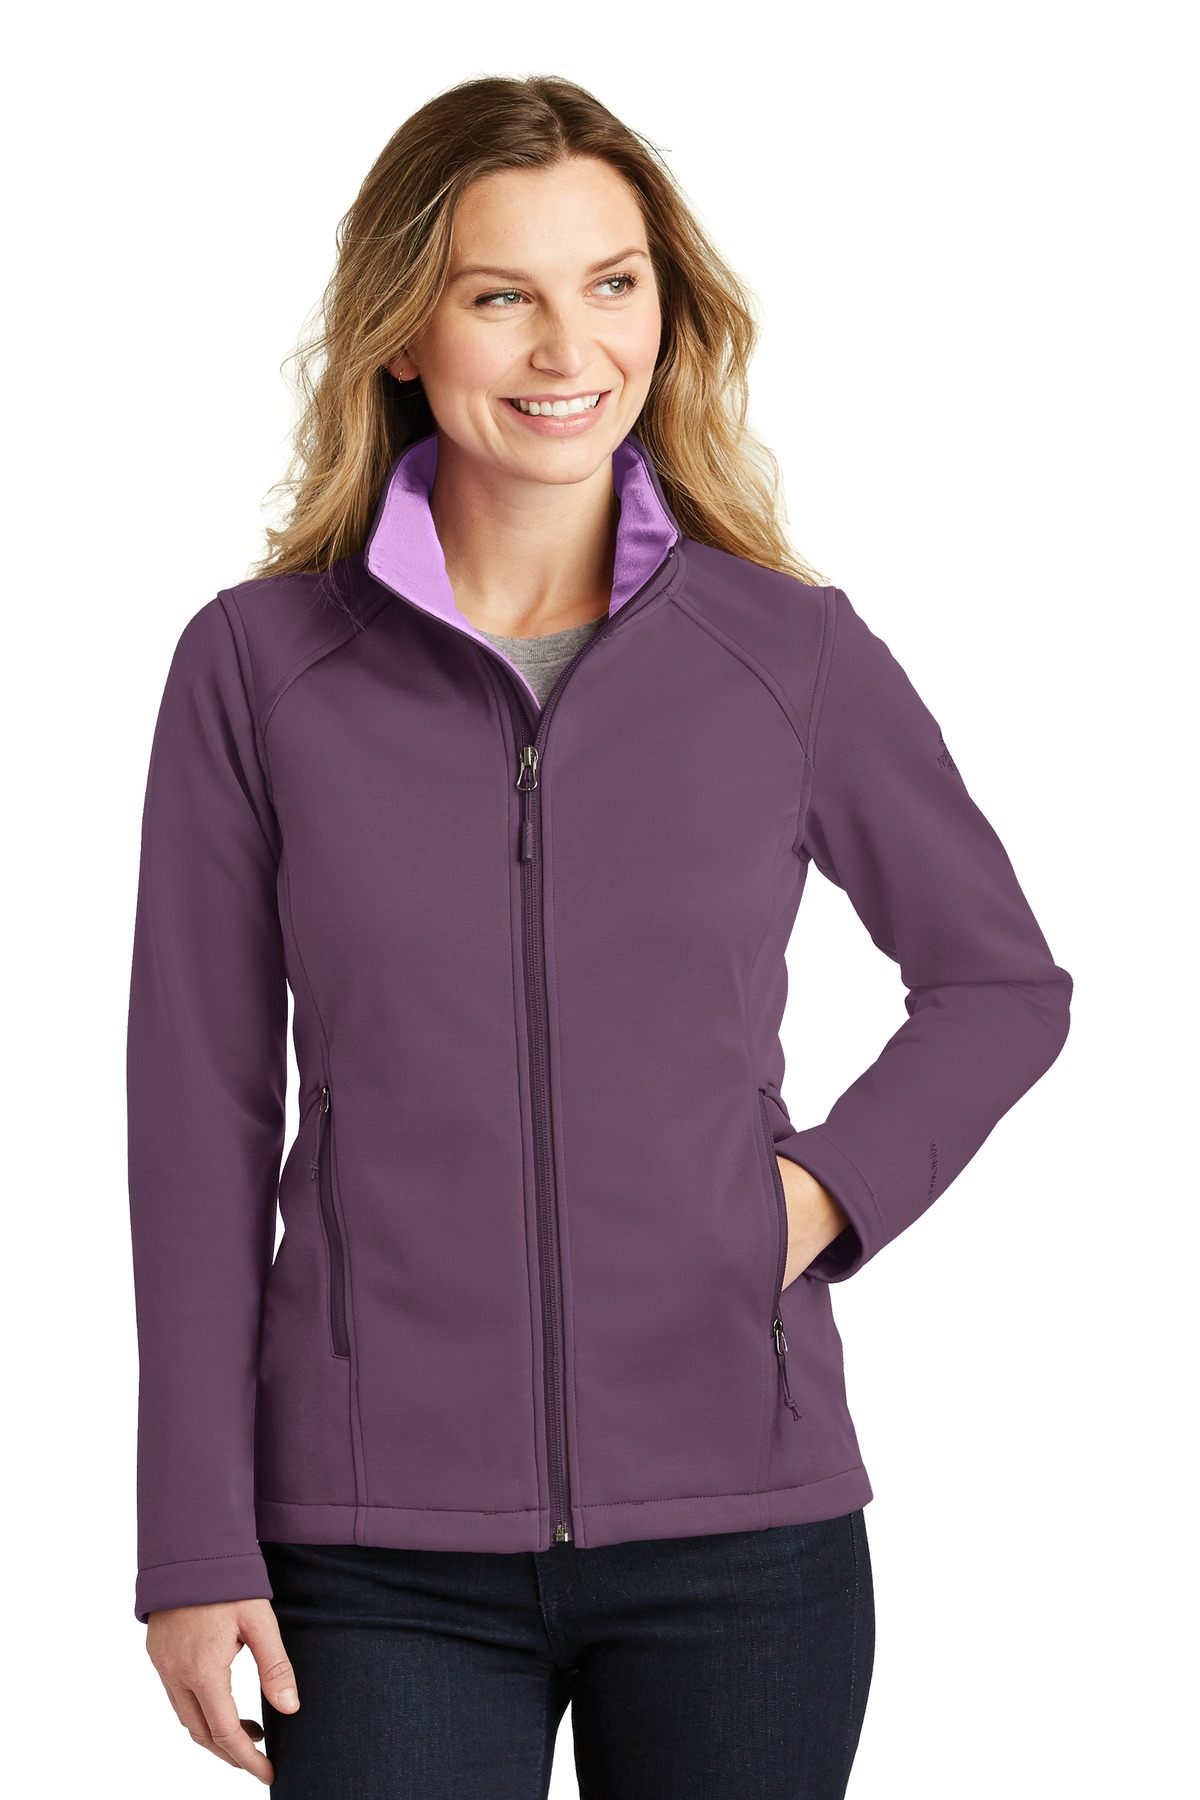 The North Face  ®  Ladies Ridgewall Soft Shell Jacket. NF0A3LGY - TNF Blackberry Wine